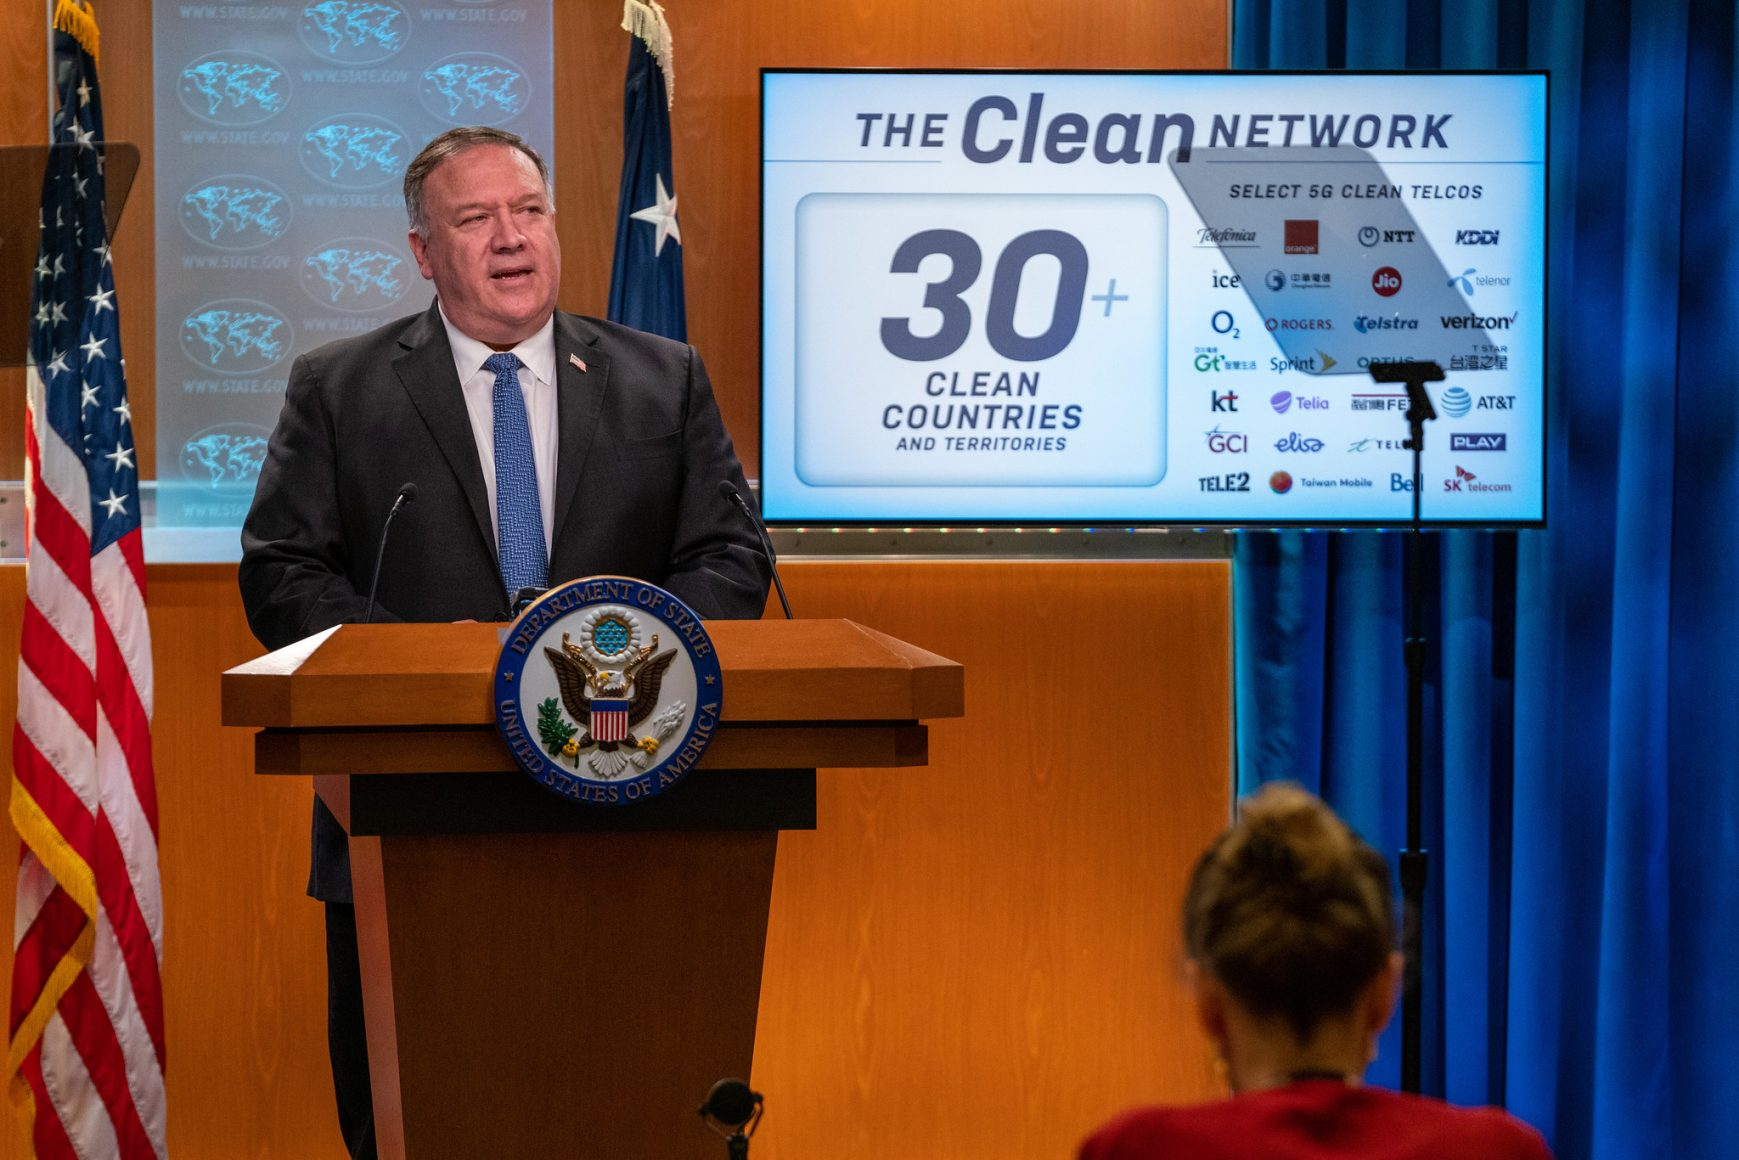 Michael Pompeo stands at a lectern.